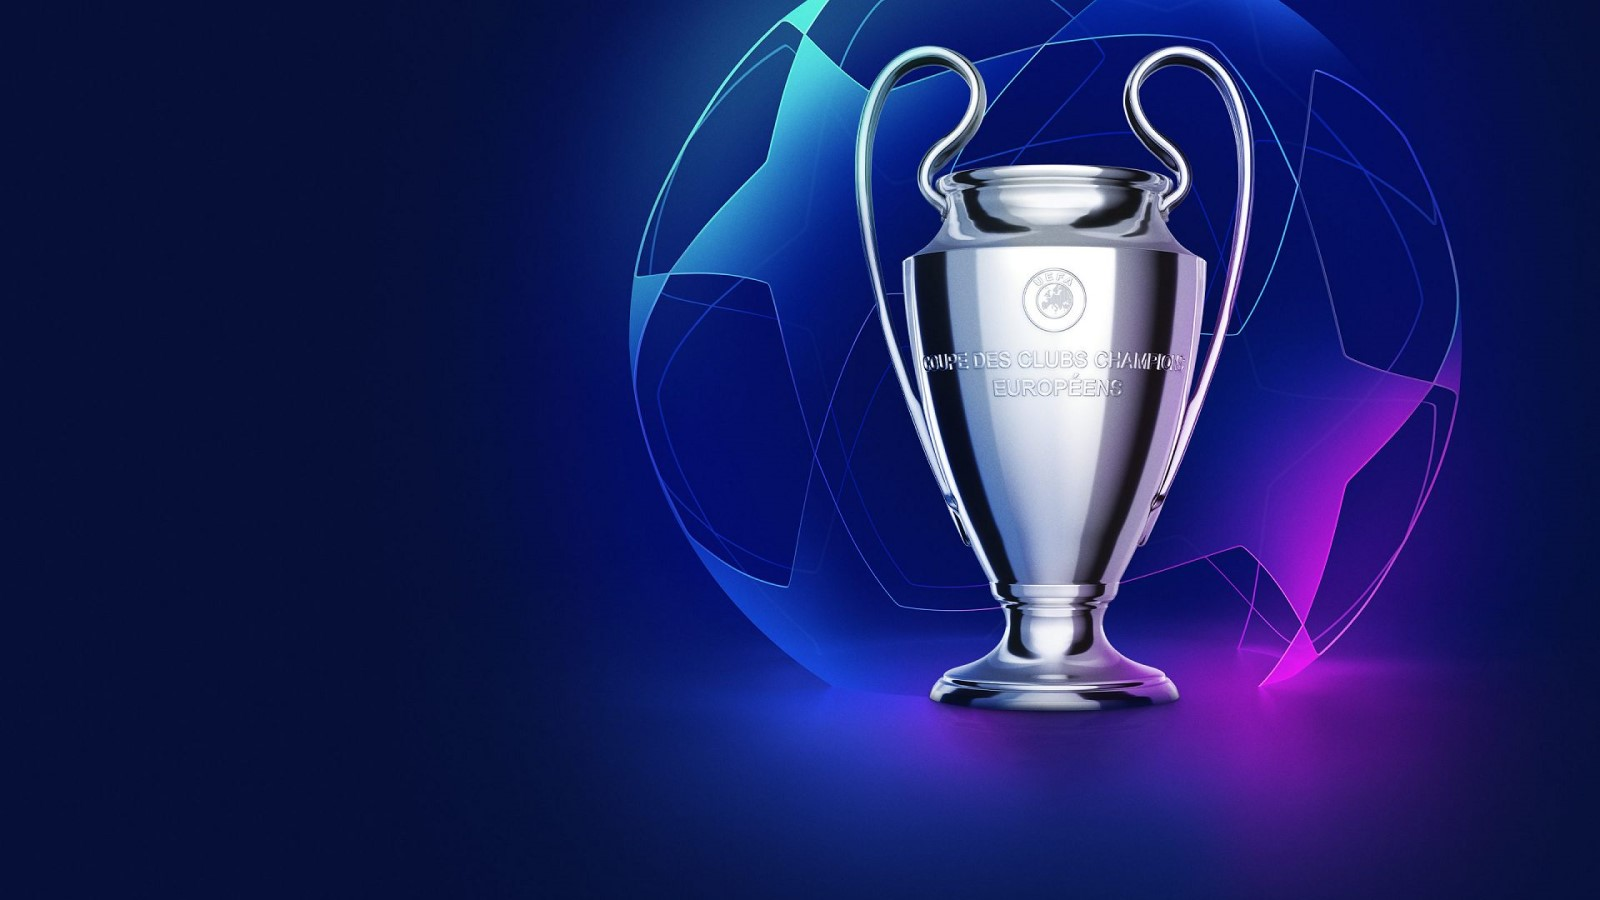 TorschГјtzen Champions League 2021